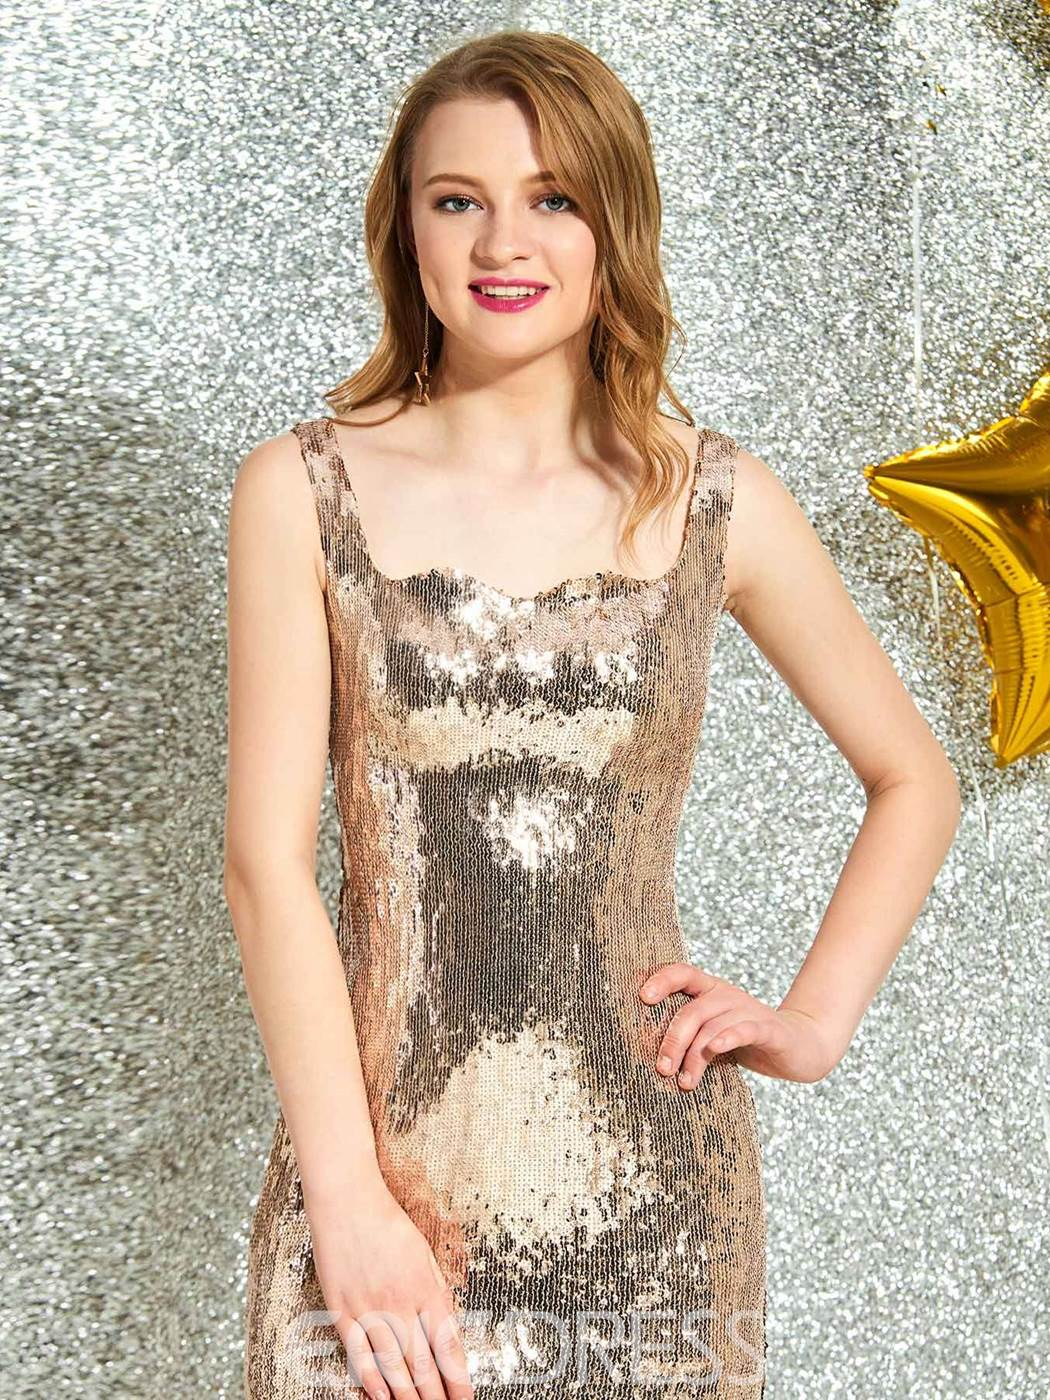 Ericdress Sequins Sheath Knee-Length Cocktail Dress 2019